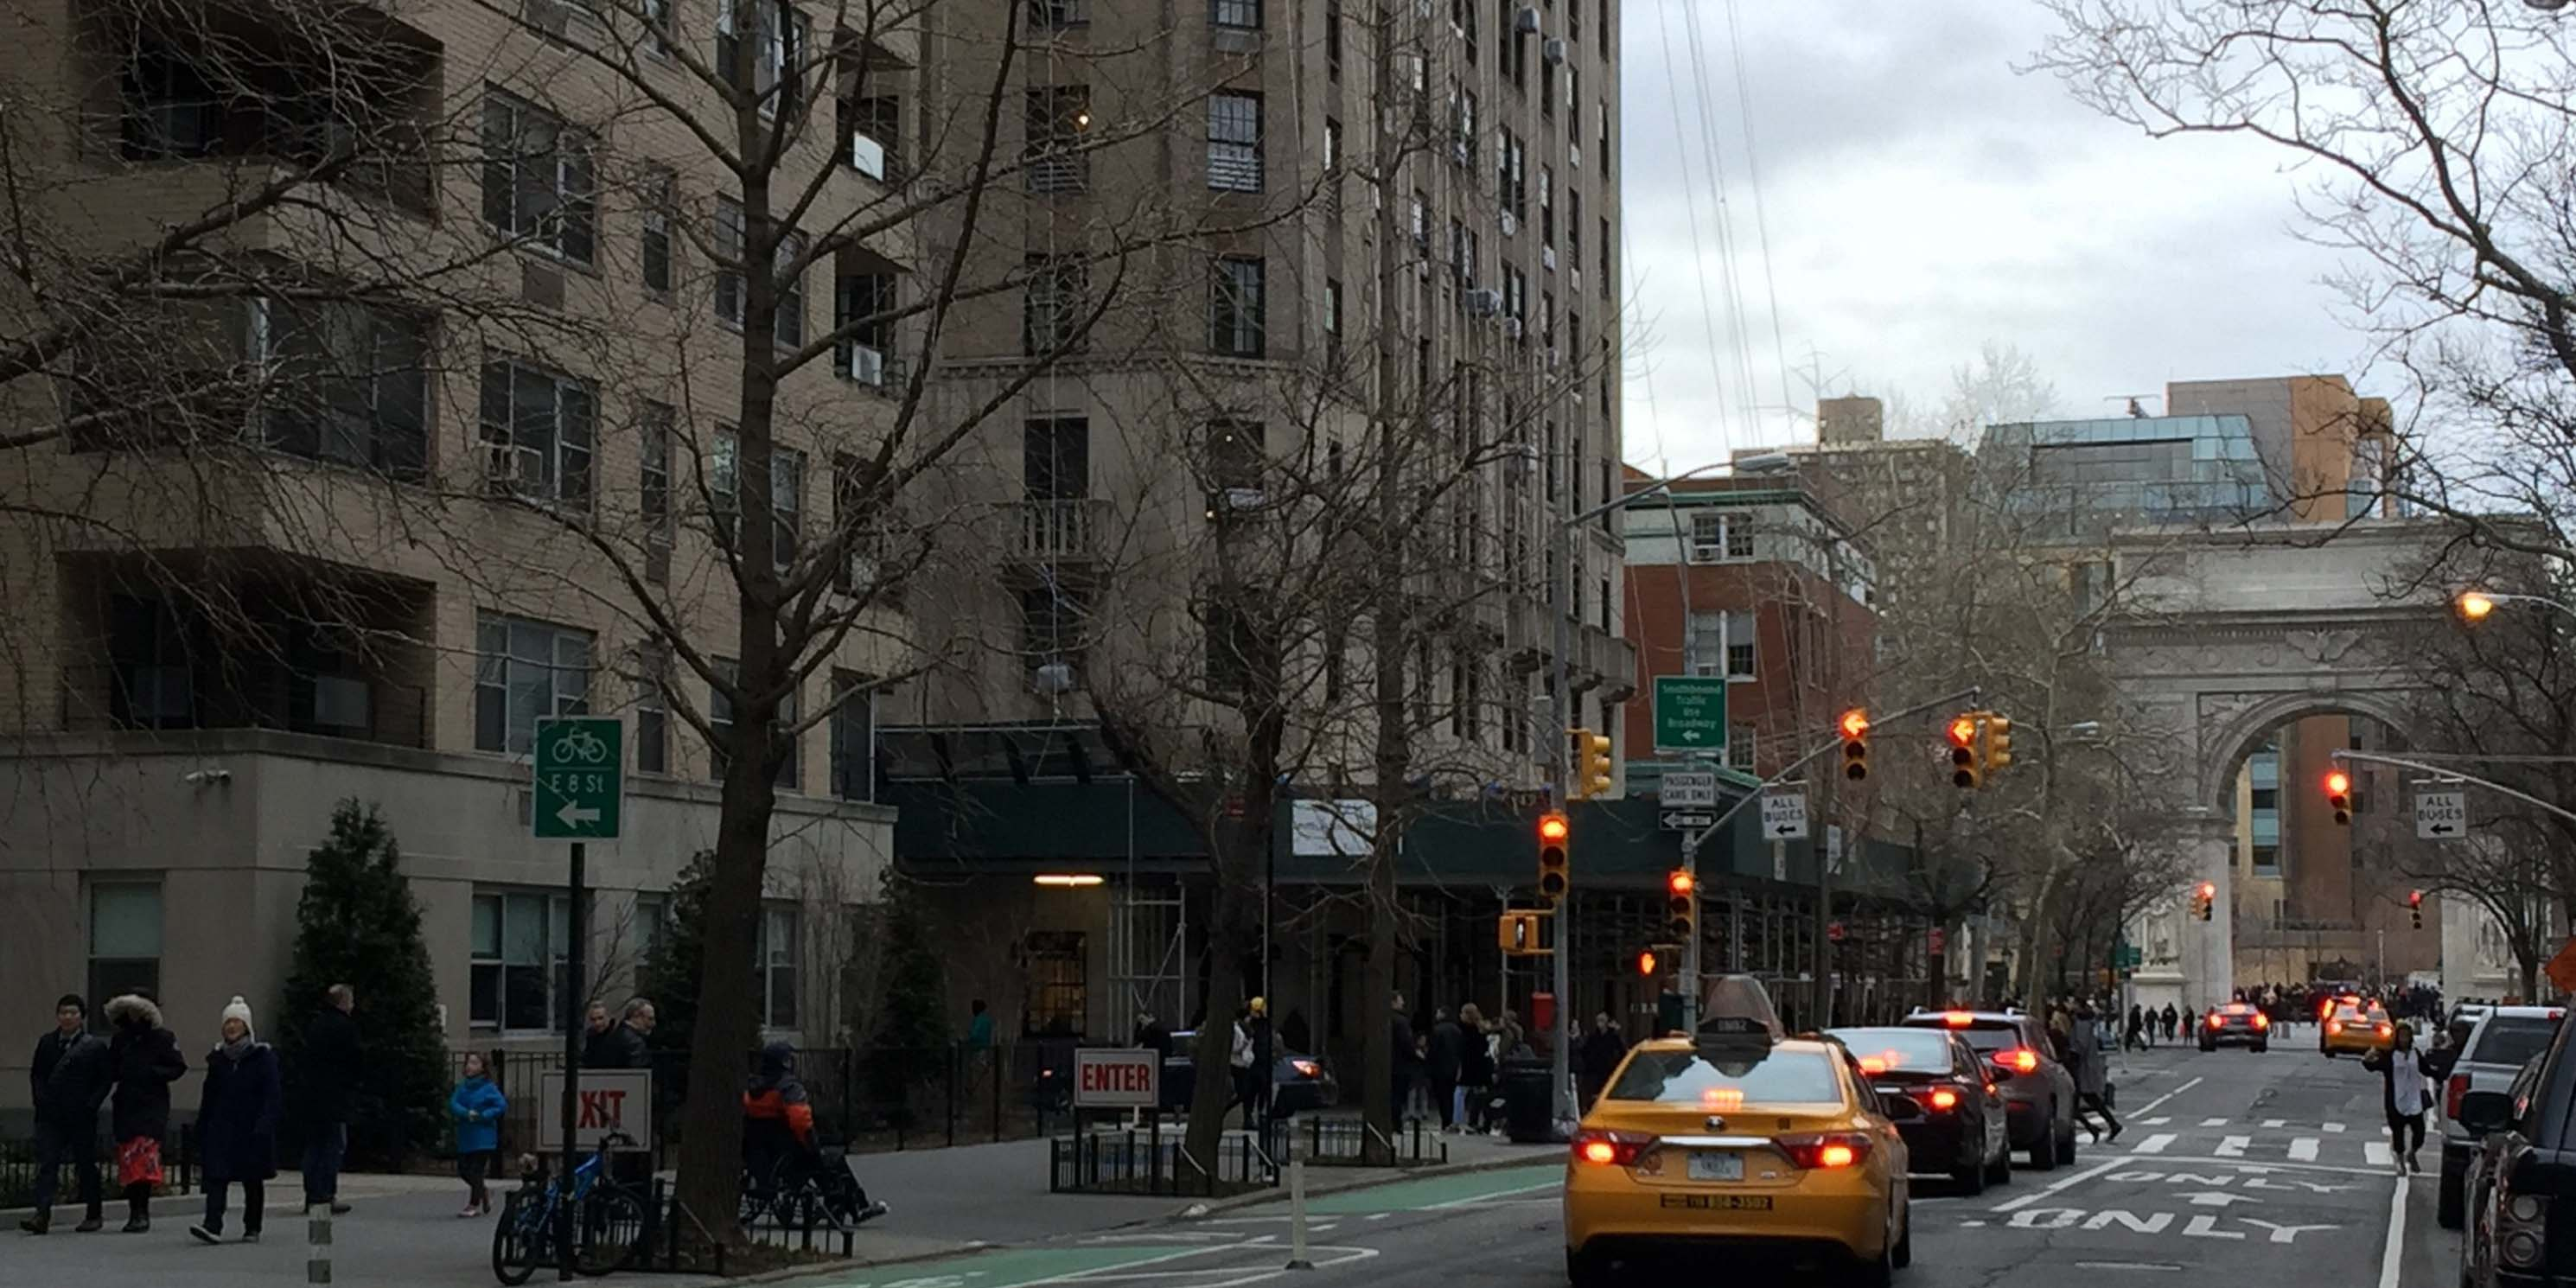 Exterior of buildings on the Upper West Side